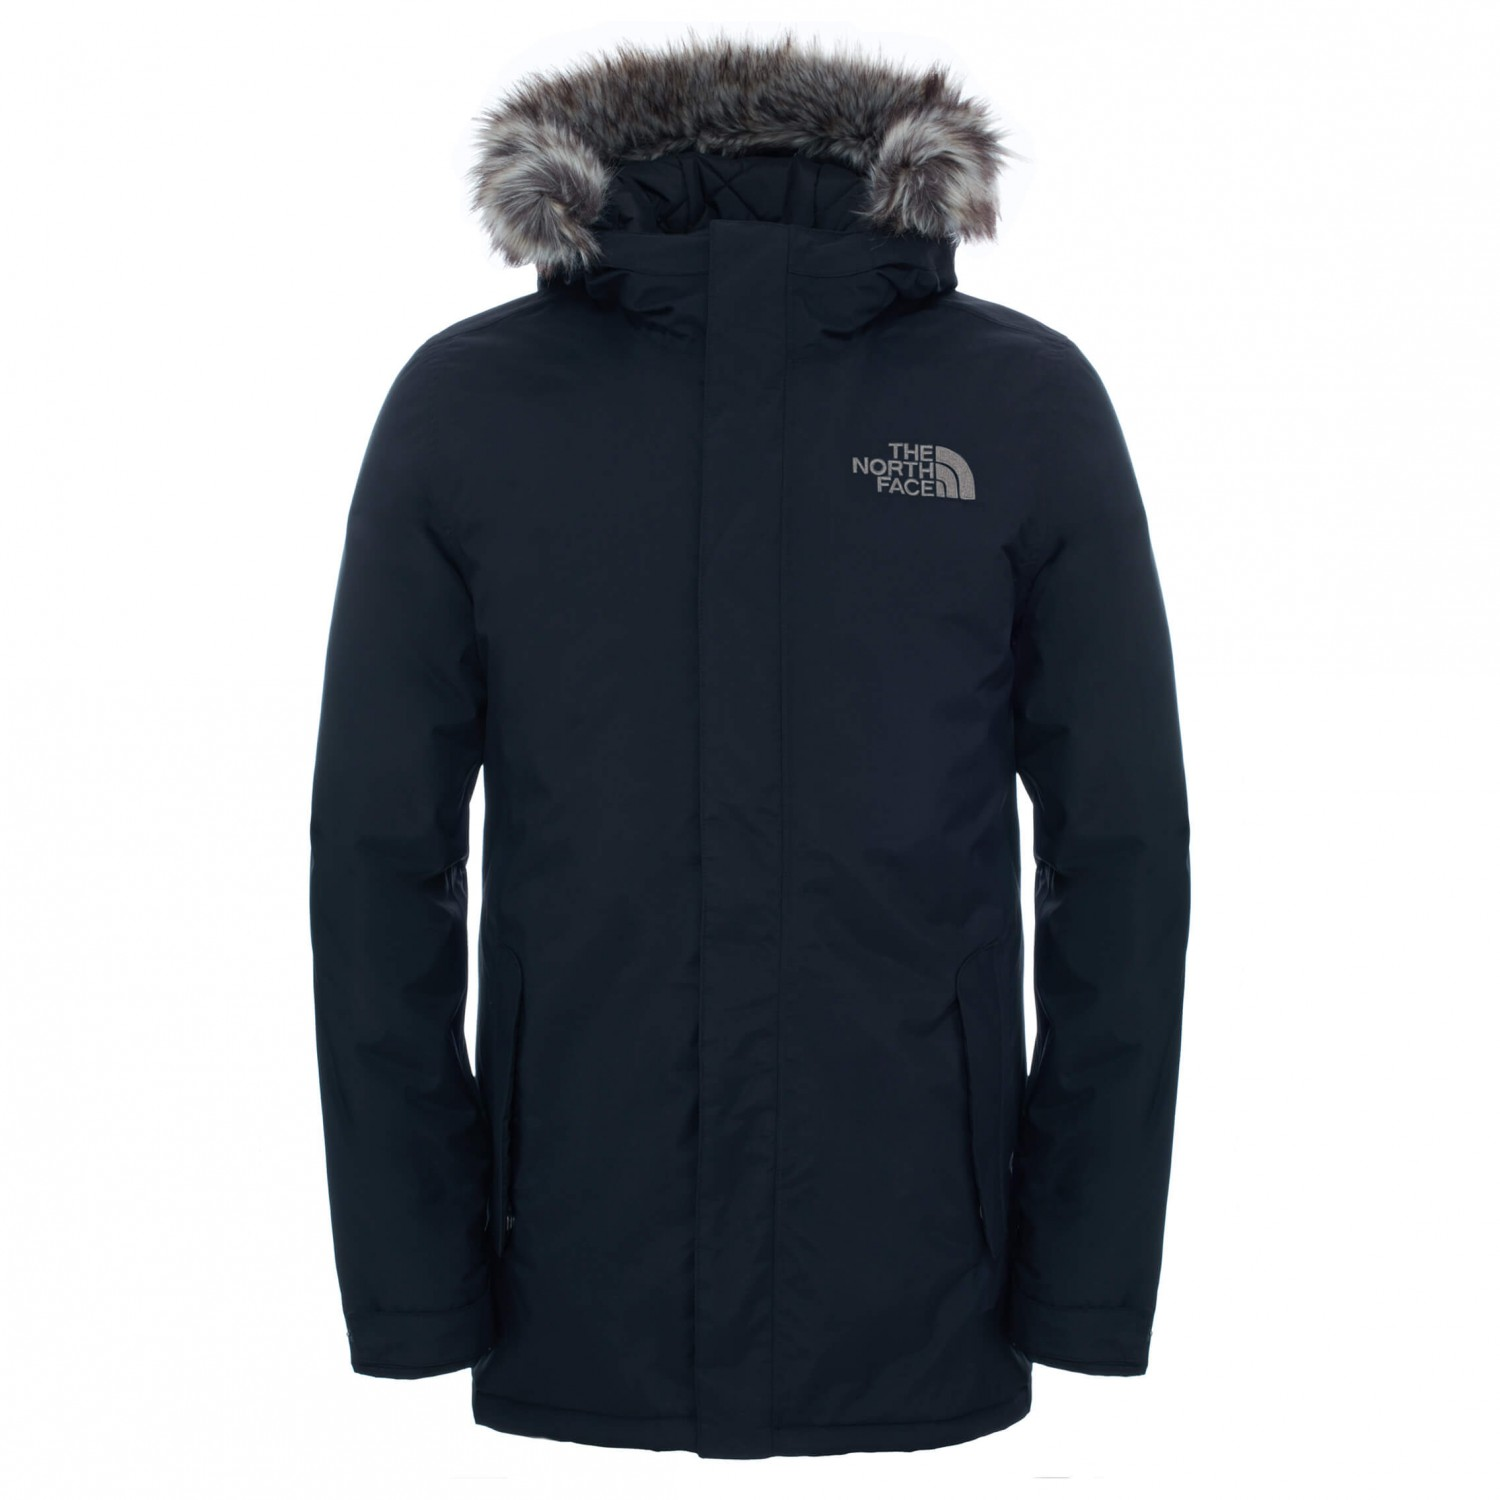 9d1d45dcf The North Face - Zaneck Jacket - Winter jacket